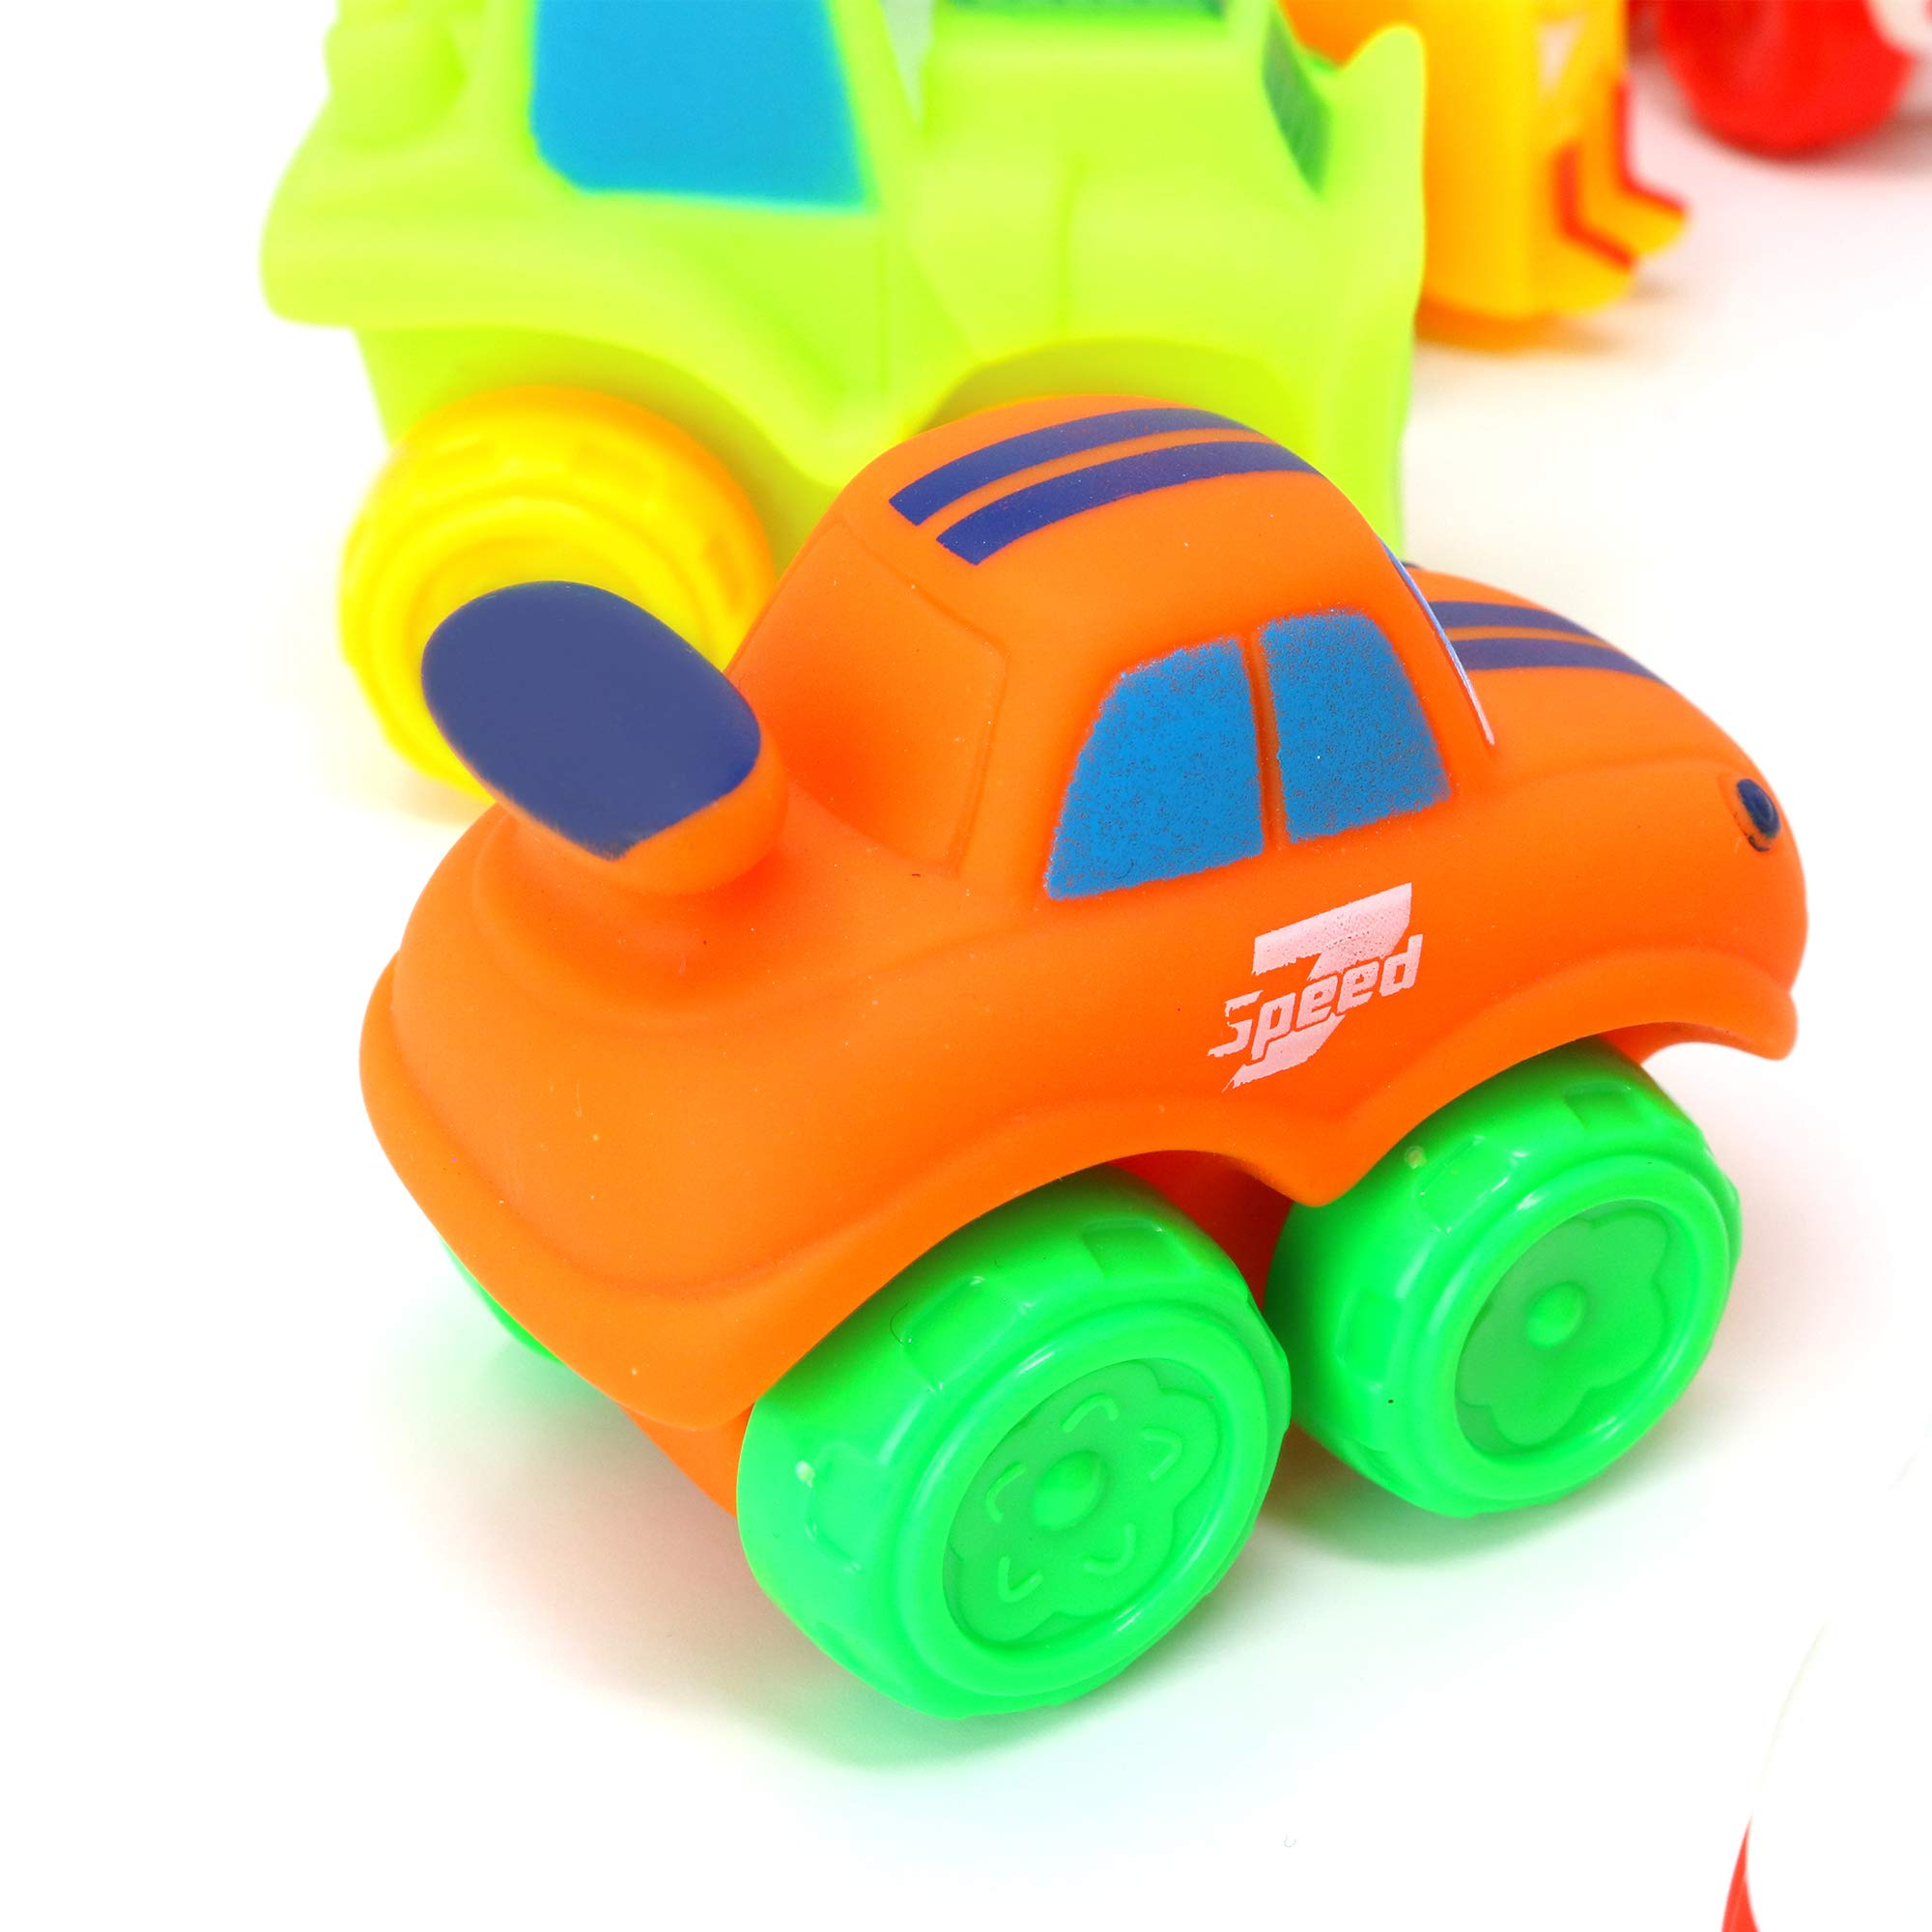 Big Mo's Toys Baby Cars - Soft Rubber Toy Vehicles for Babies and Toddlers - 12 Pieces by Big Mo's Toys (Image #6)